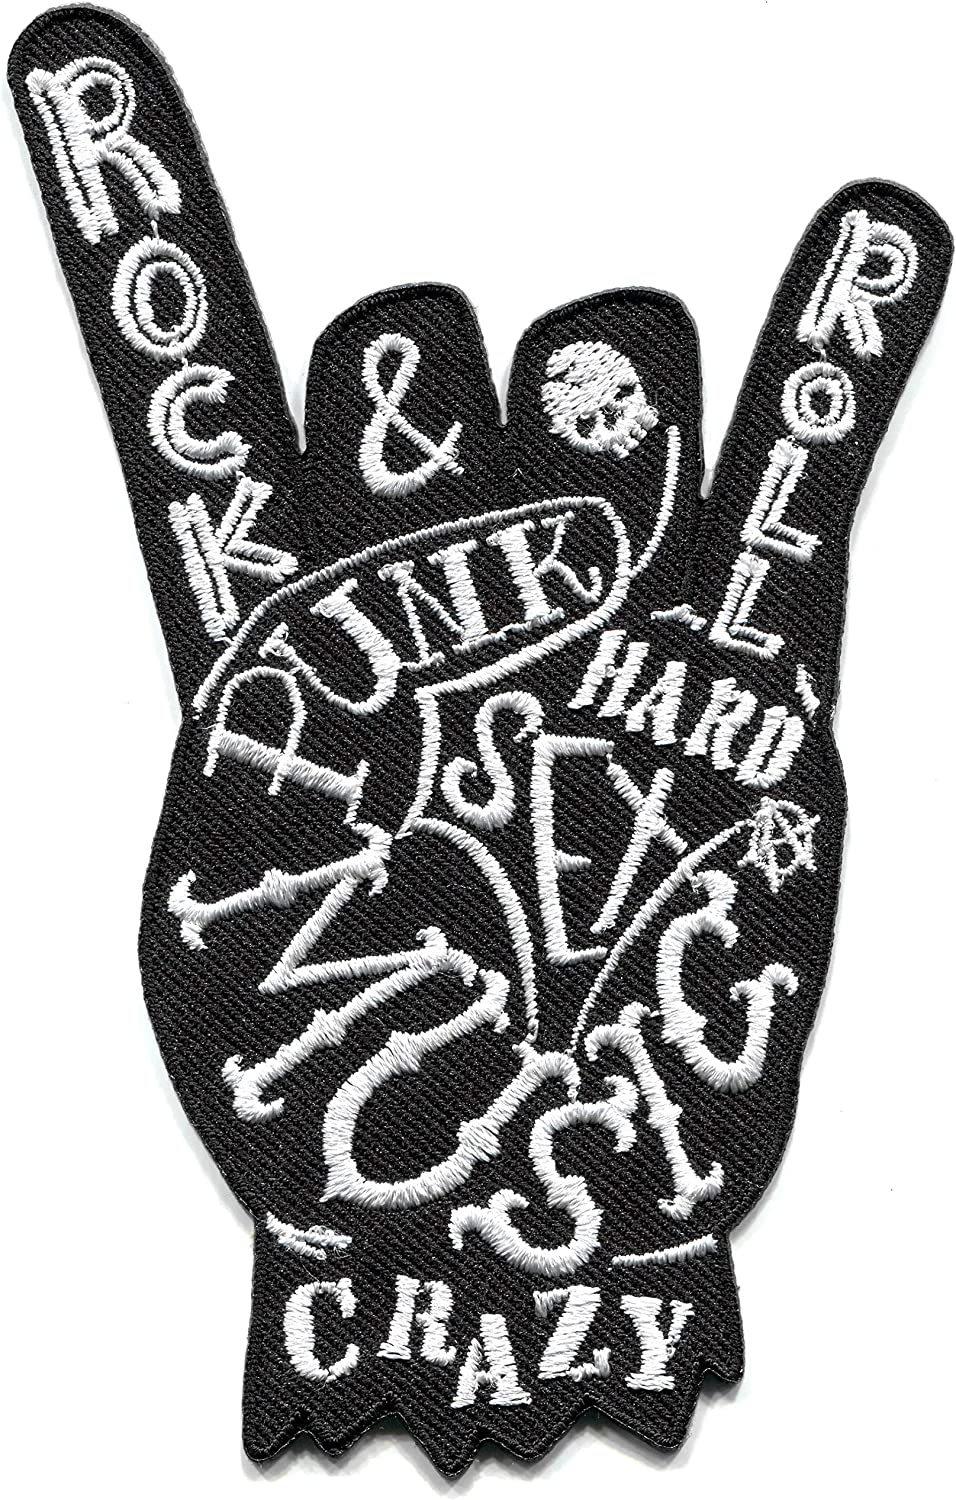 Rock /& roll Salute Punk Biker Retro Party Embroidered Applique Iron-on Patch S-1575